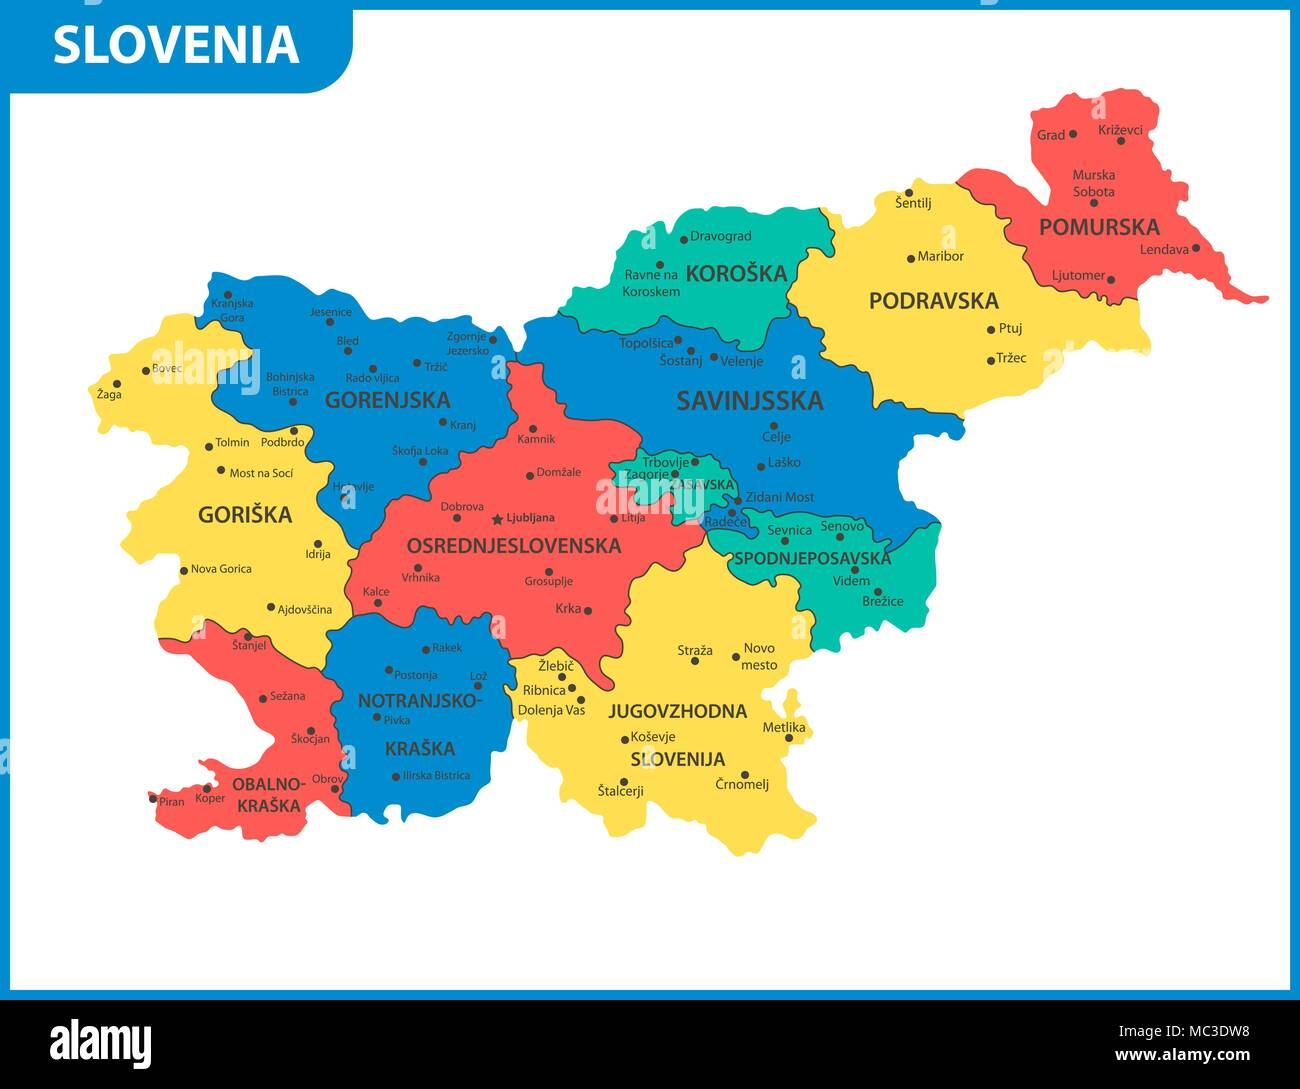 The detailed map of Slovenia with regions or states and cities